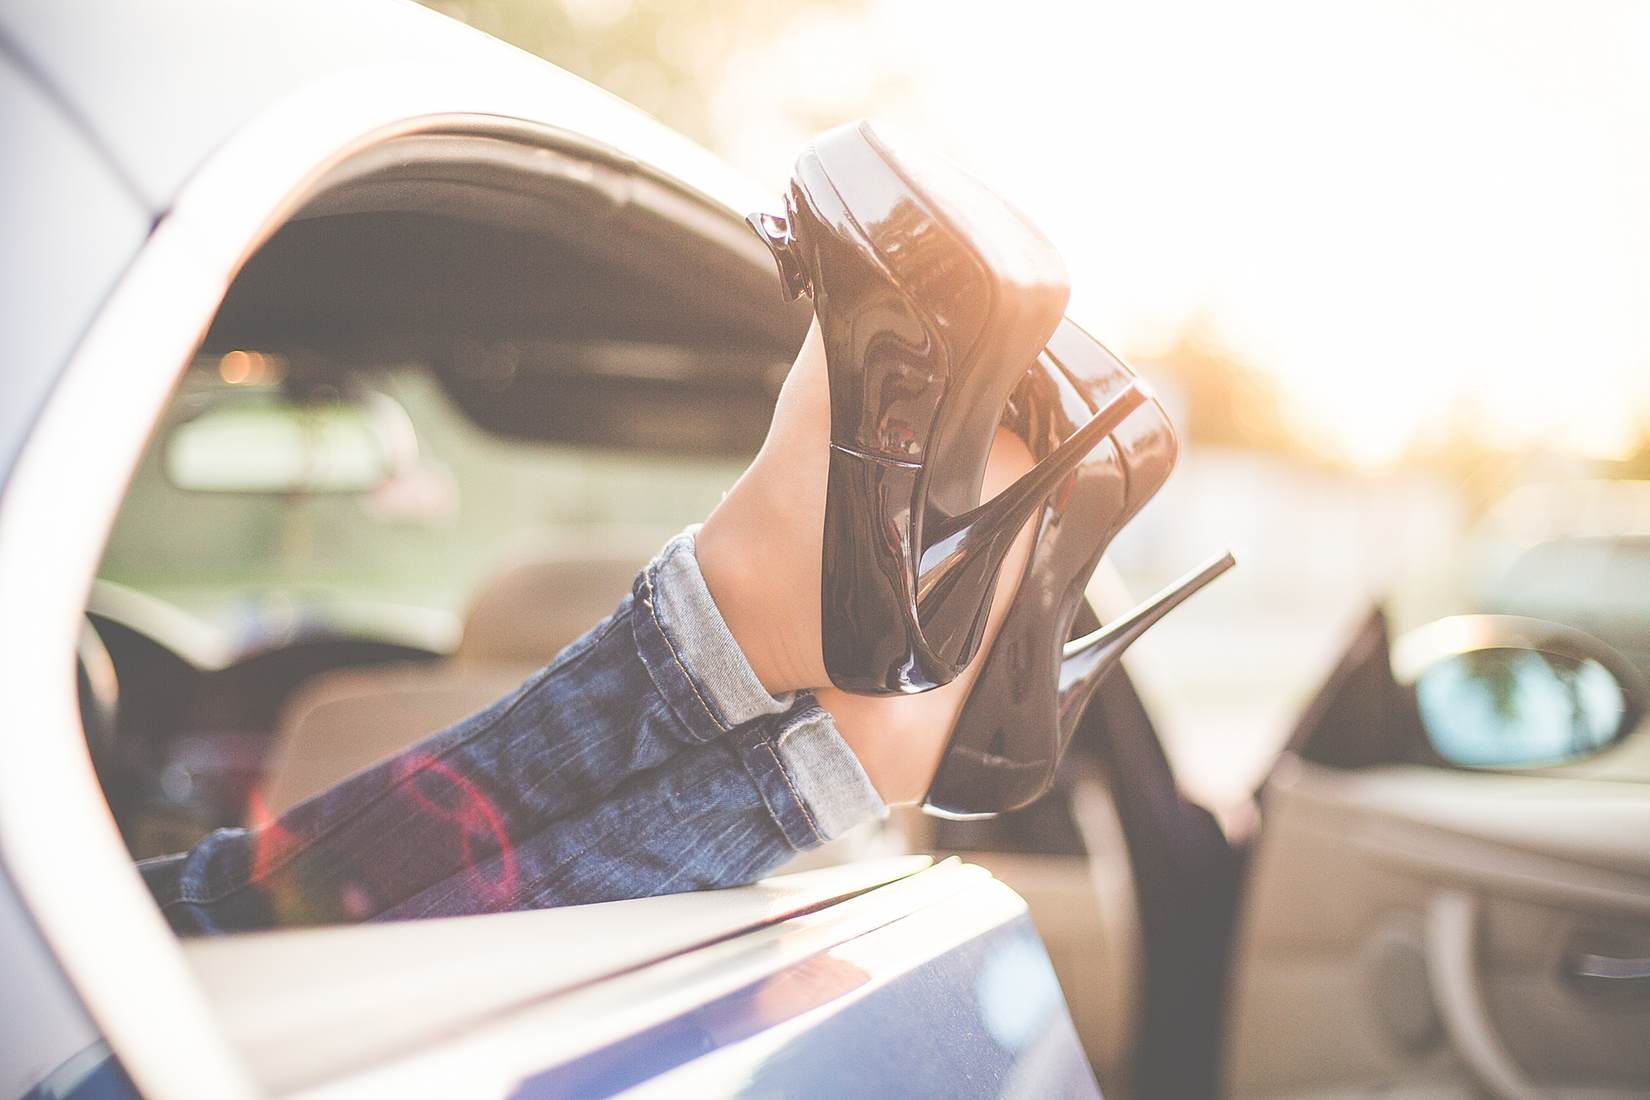 sexy-woman-legs-on-high-heels-out-of-car-windows